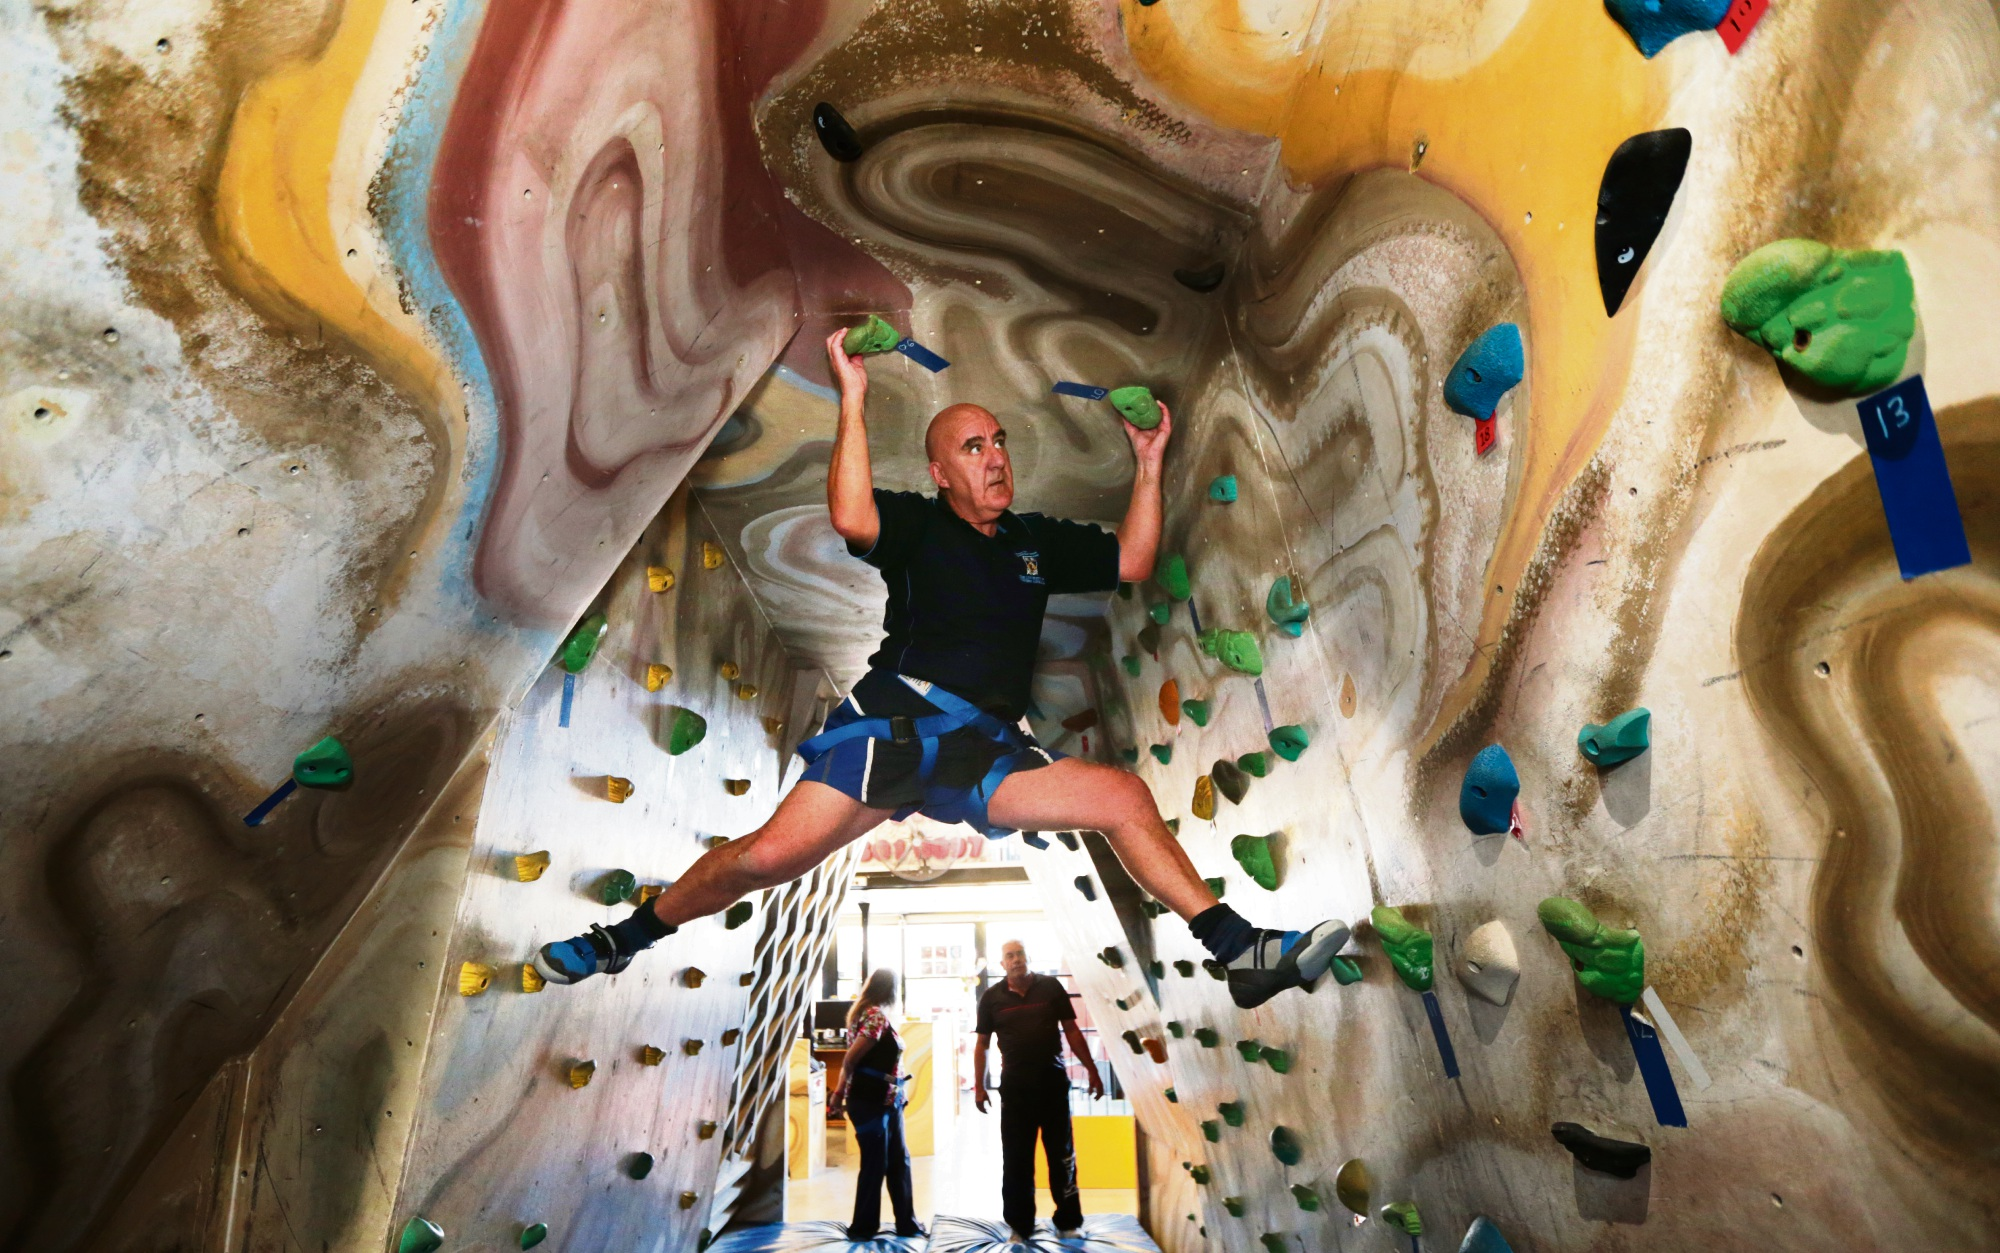 The City of Wanneroo's age-friendly strategy supports the Growing Old and Living Dangerously program, which included rock climbing that Alex Duff took part in at Joondalup Climbing Centre. Picture: Martin Kennealey d470302